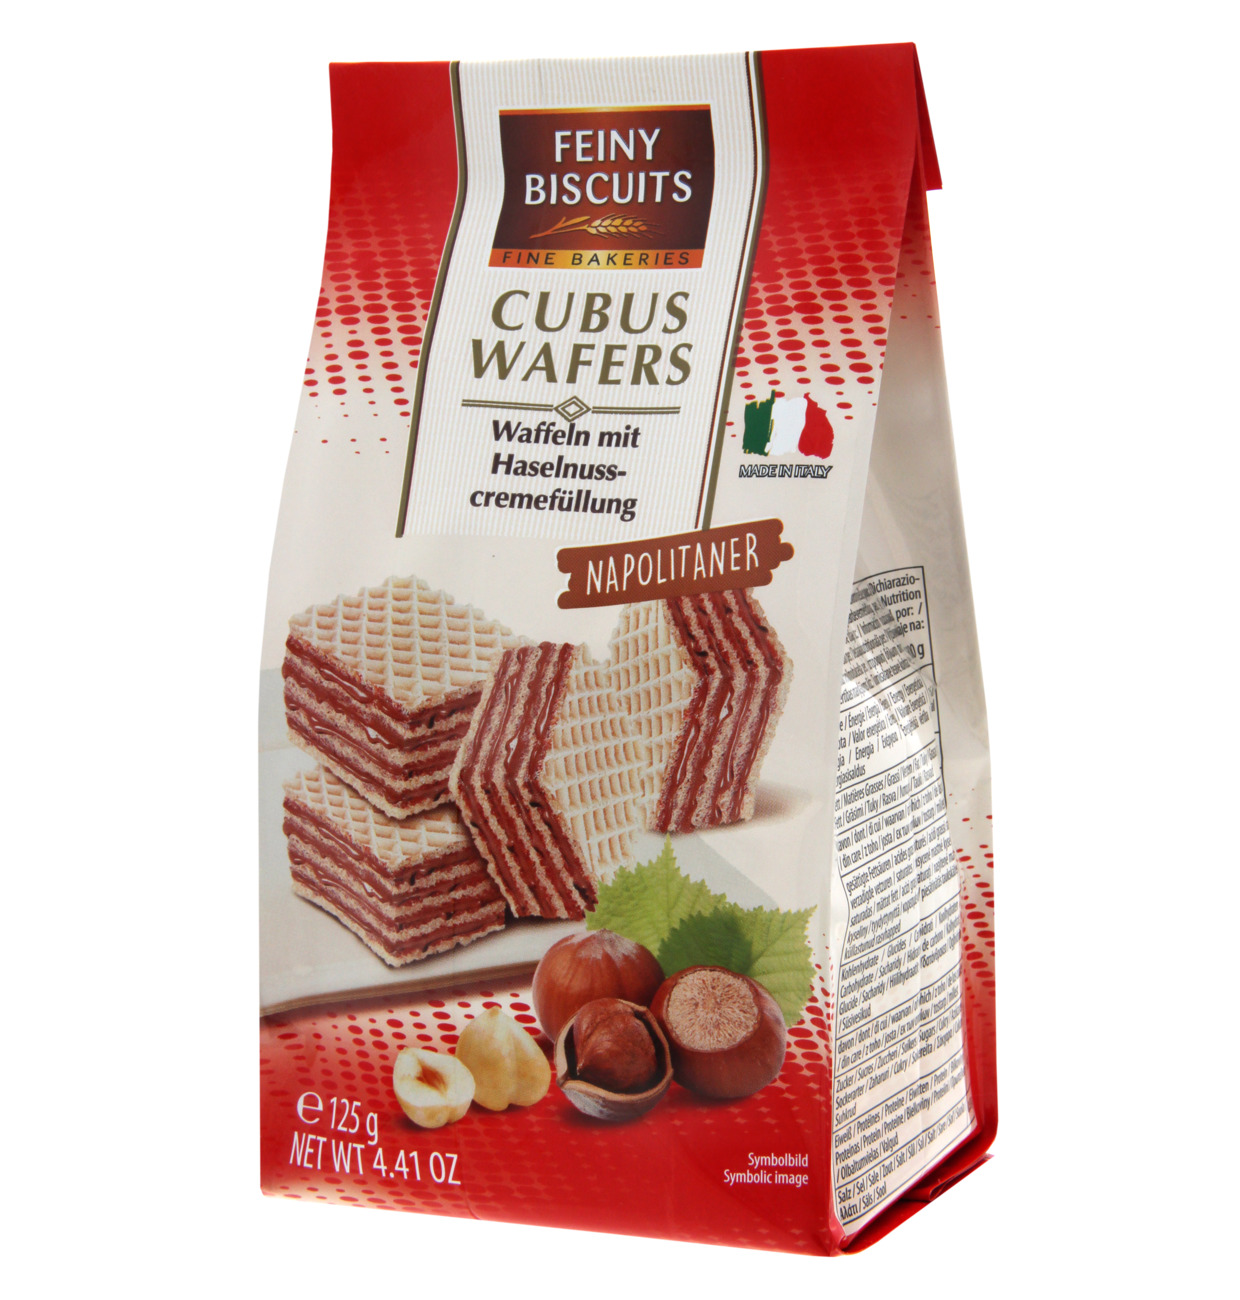 Cubus Wafers Napolitaner